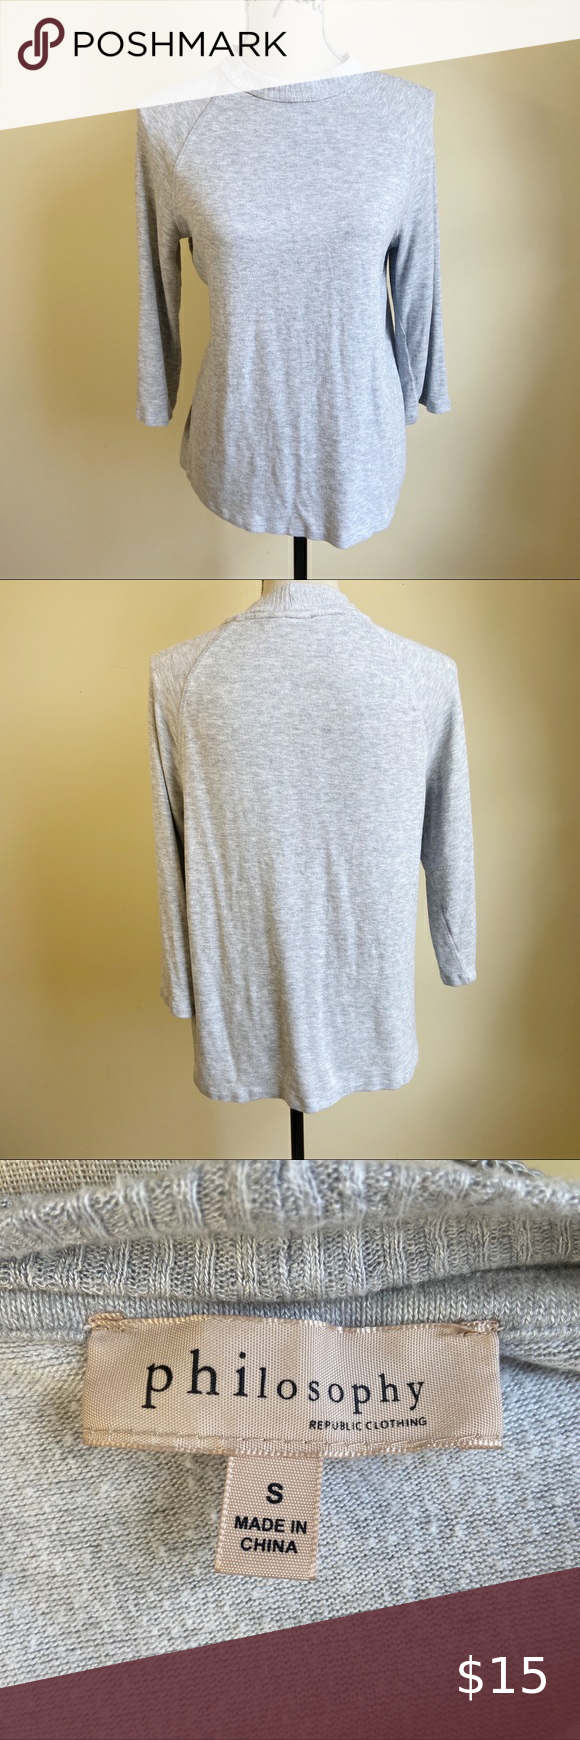 Philosophy Grey Soft Sweater Top Softest Sweater Sweater Top Sweaters